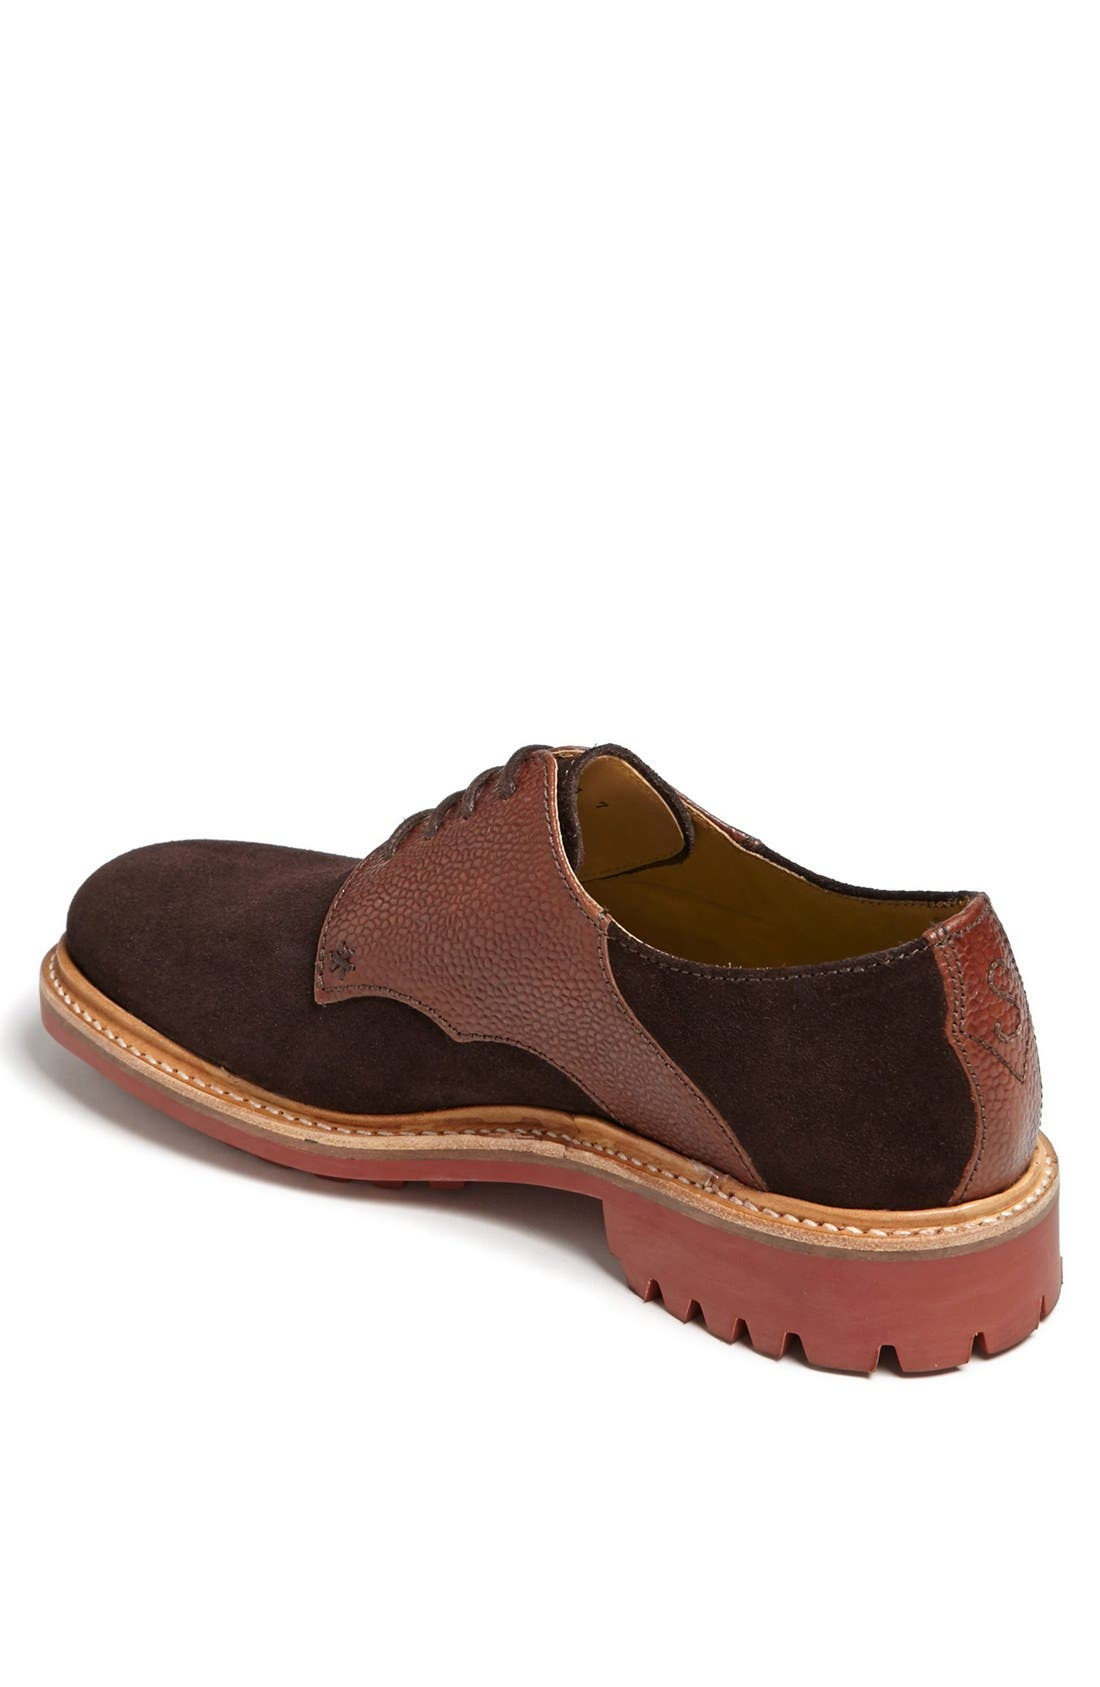 Alternate Image 2  - Oliver Sweeney 'Sutton' Saddle Shoe